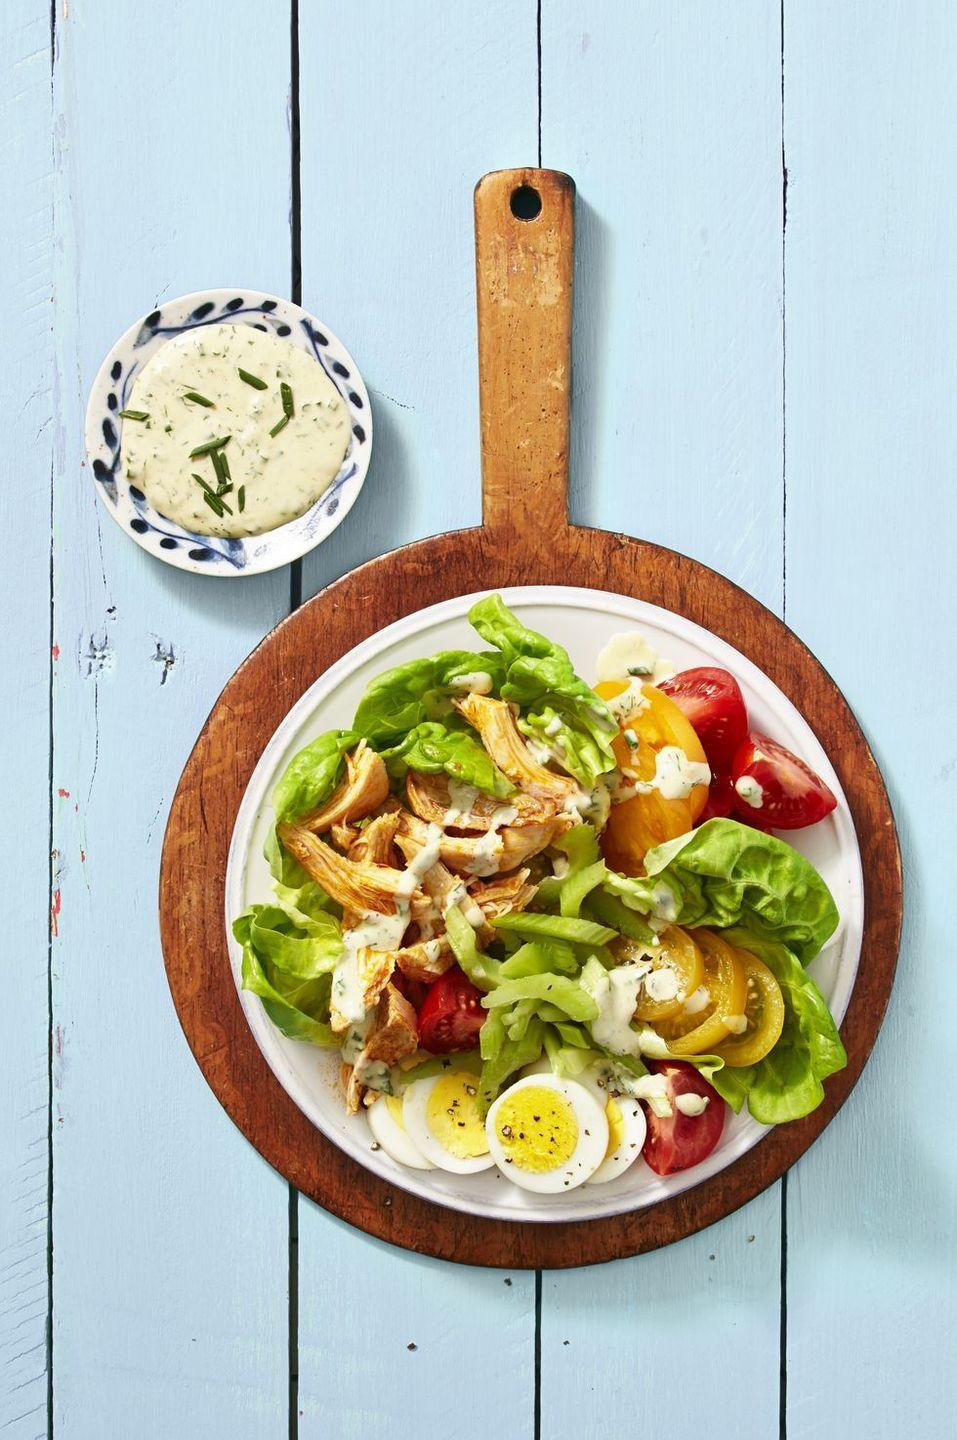 """<p>Step up your lunch game with this chicken wing-inspired salad topped with a homemade buttermilk <a href=""""https://www.goodhousekeeping.com/food-recipes/easy/g27562922/best-vegan-salad-dressings/"""" rel=""""nofollow noopener"""" target=""""_blank"""" data-ylk=""""slk:ranch dressing"""" class=""""link rapid-noclick-resp"""">ranch dressing</a>.</p><p><em><a href=""""https://www.goodhousekeeping.com/food-recipes/a39936/buffalo-chicken-cobb-salad-recipe/"""" rel=""""nofollow noopener"""" target=""""_blank"""" data-ylk=""""slk:Get the recipe for Buffalo Chicken Cobb Salad »"""" class=""""link rapid-noclick-resp"""">Get the recipe for Buffalo Chicken Cobb Salad »</a></em></p>"""